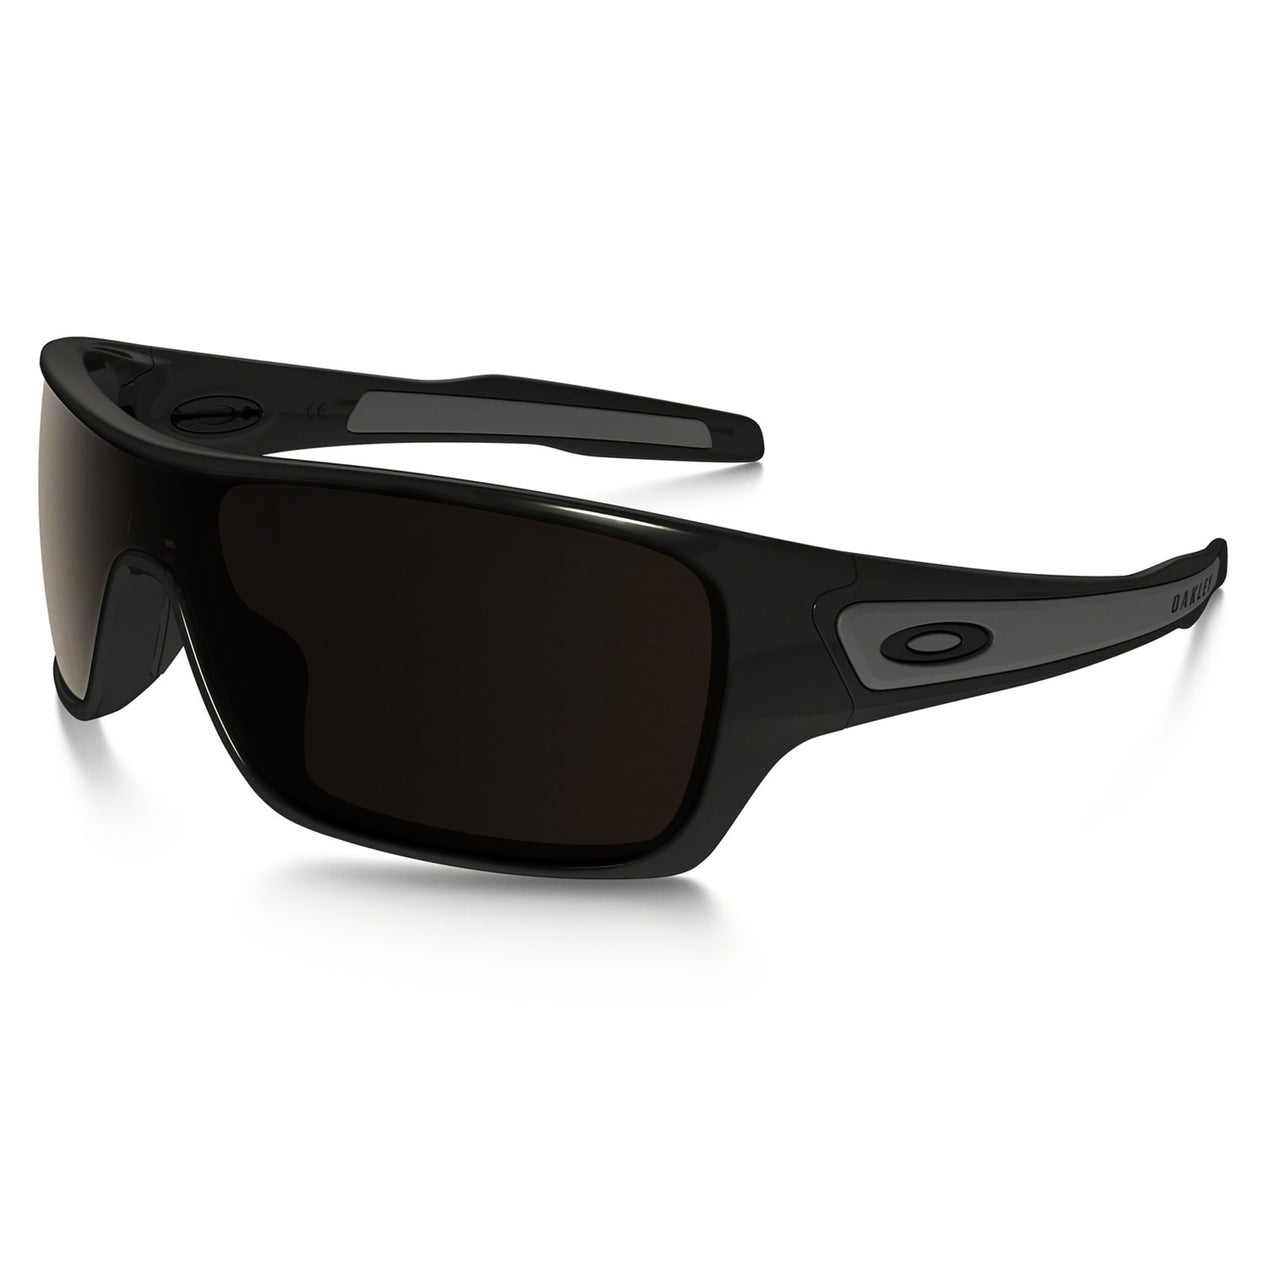 ee21c64f8a5 Oakley Turbine Rotor Polished Black with Prizm Deep Water Polarized Lens